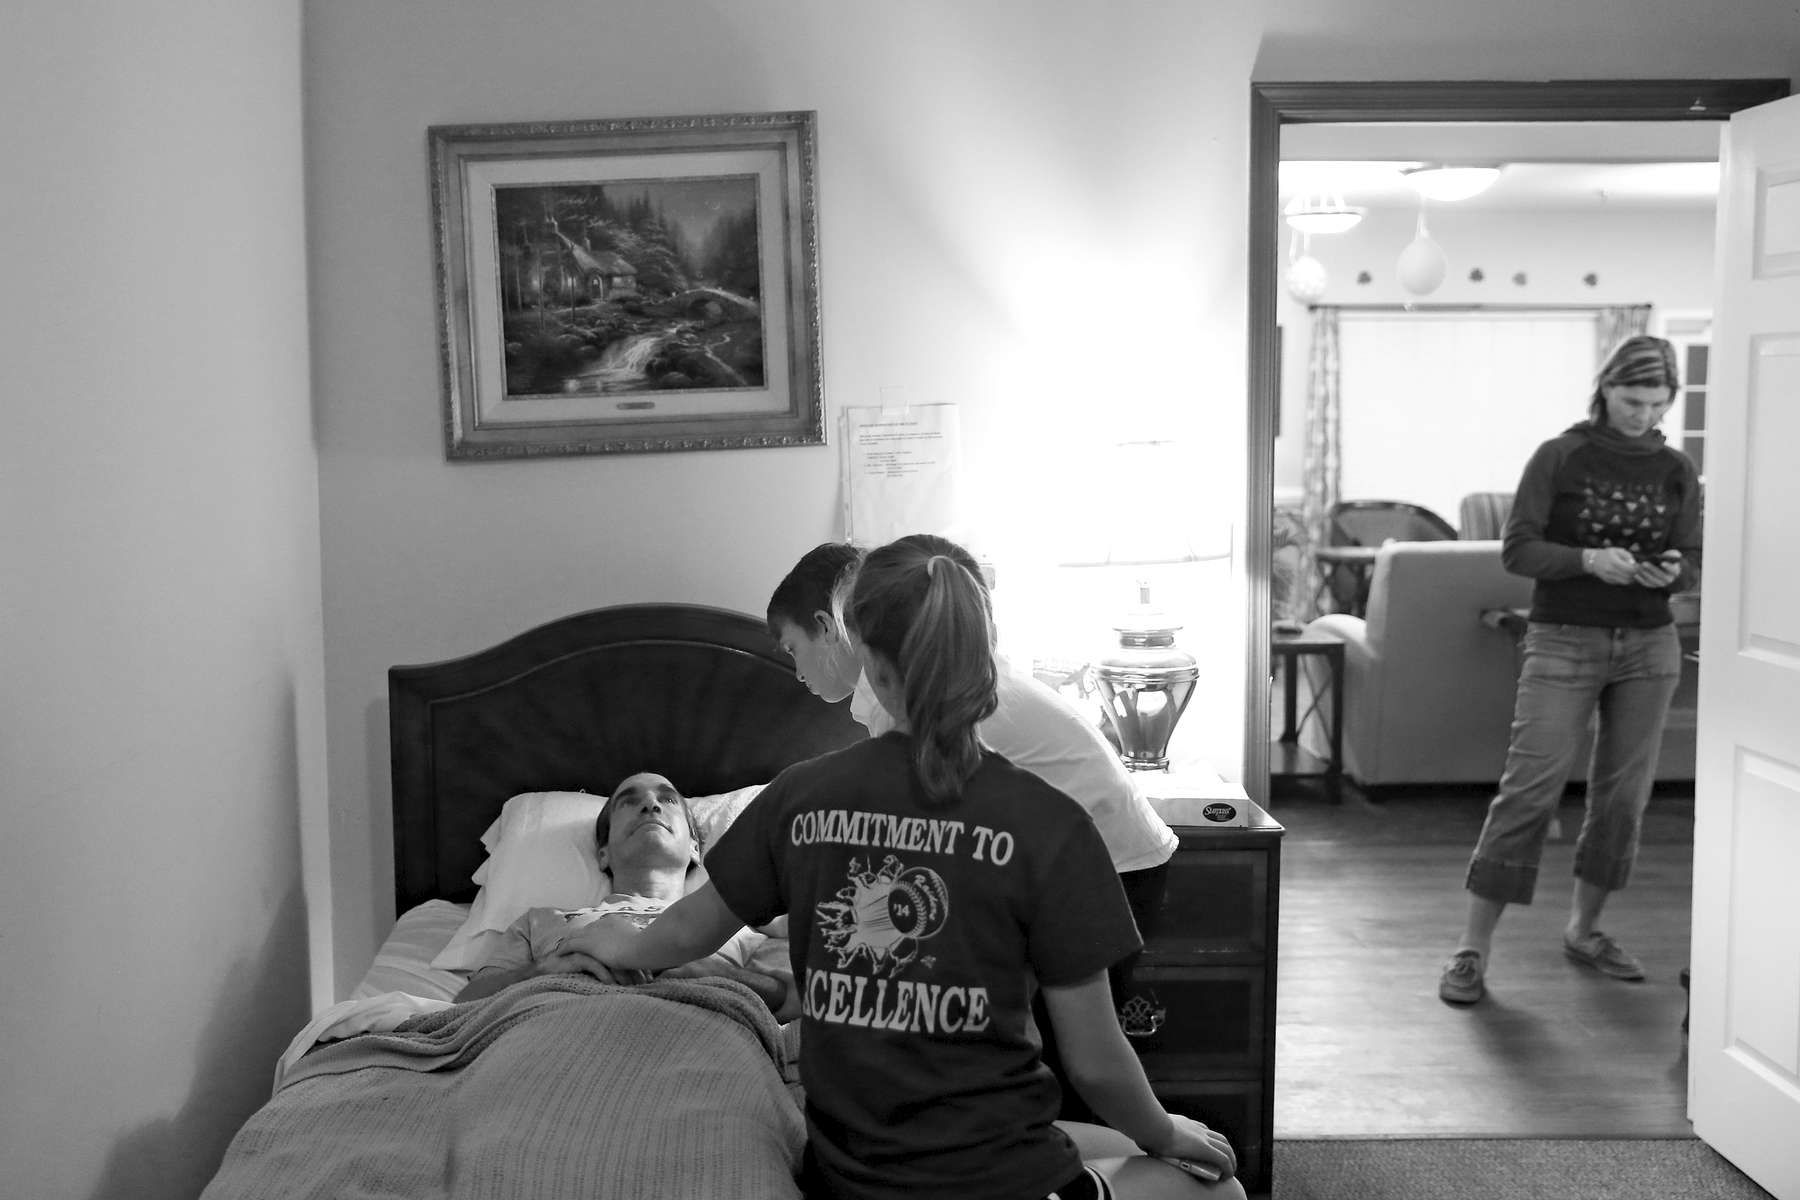 Bradley Garner, center, and Frankie Garner stand beside their father, Jim Garner, while he lays in bed at Commonwealth Assisted Living in Hampton as Karen Garner responds to messages on her phone Thursday evening March 24, 2016. Jim died from Alzheimer's April 2, 2016. Jim was diagnosed by the National Institute of Health in 2011 with {quote}mild cognitive impairment,{quote} the precursor to early-onset Alzheimer's disease. The genetically pre-determined disease has devastated his family--his mother died of the disease at age 61, his older brother at 52.